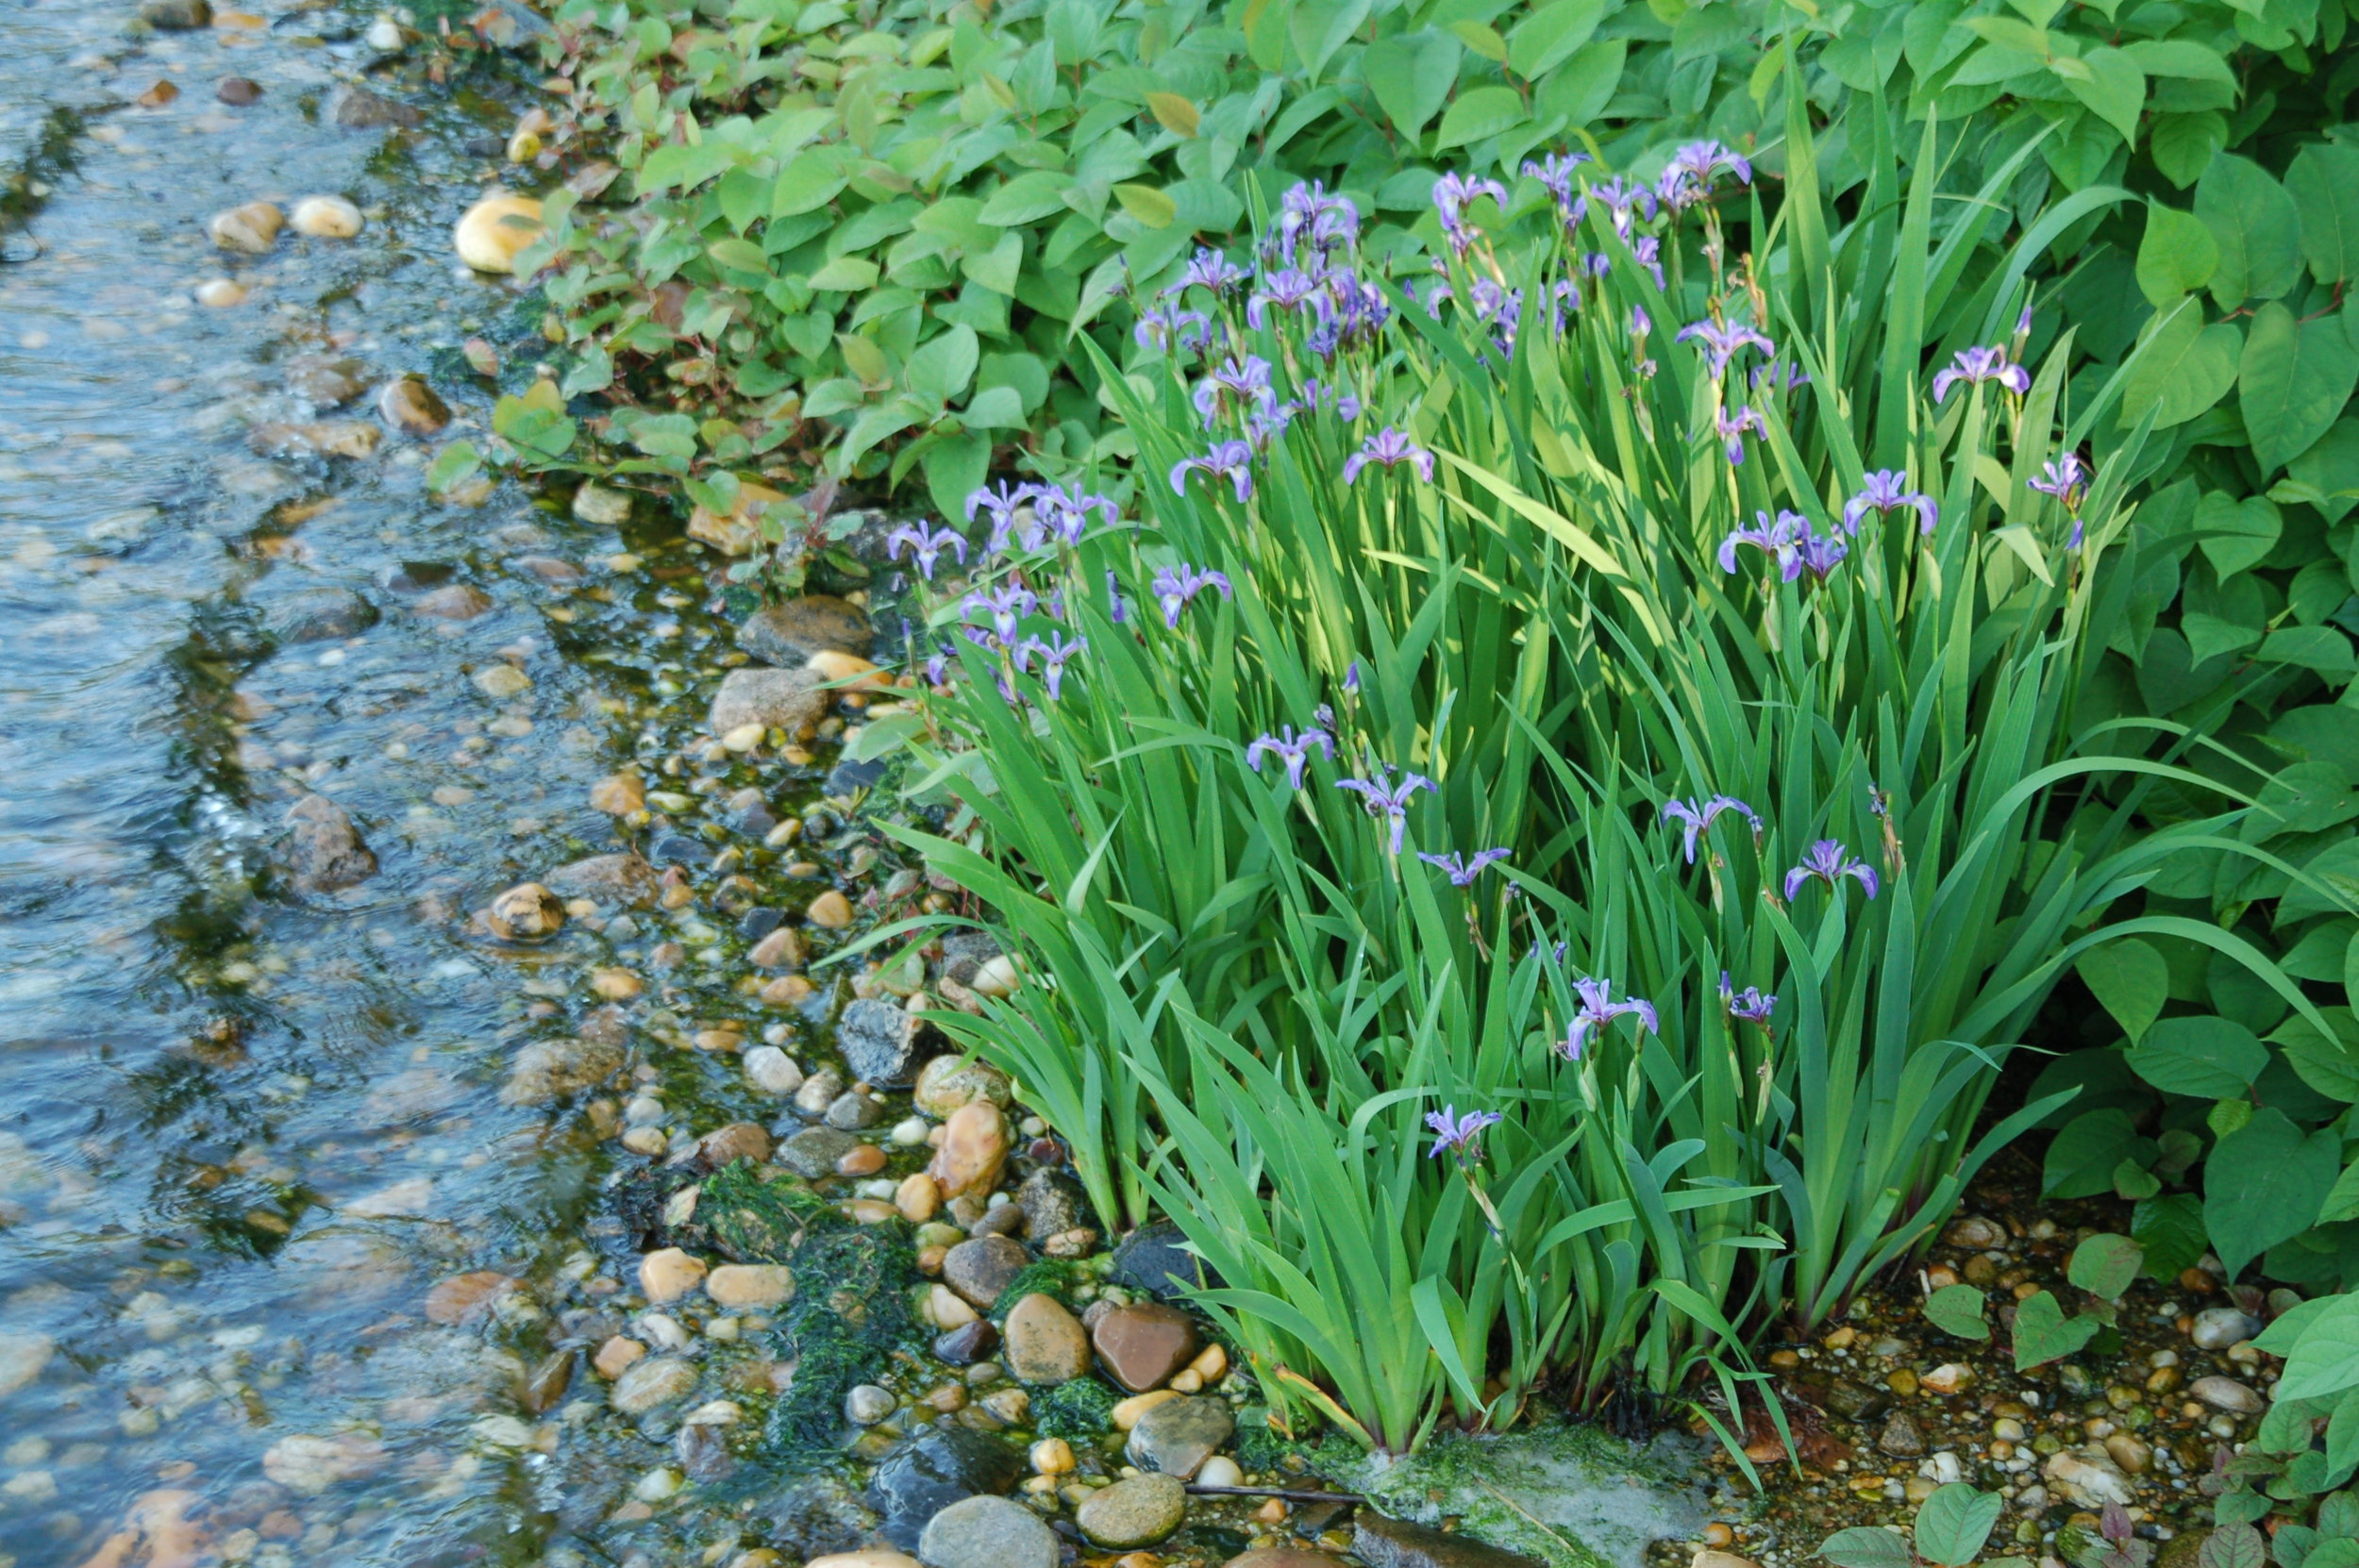 Iris growing in the fresh water springs off Three Mile Harbor.